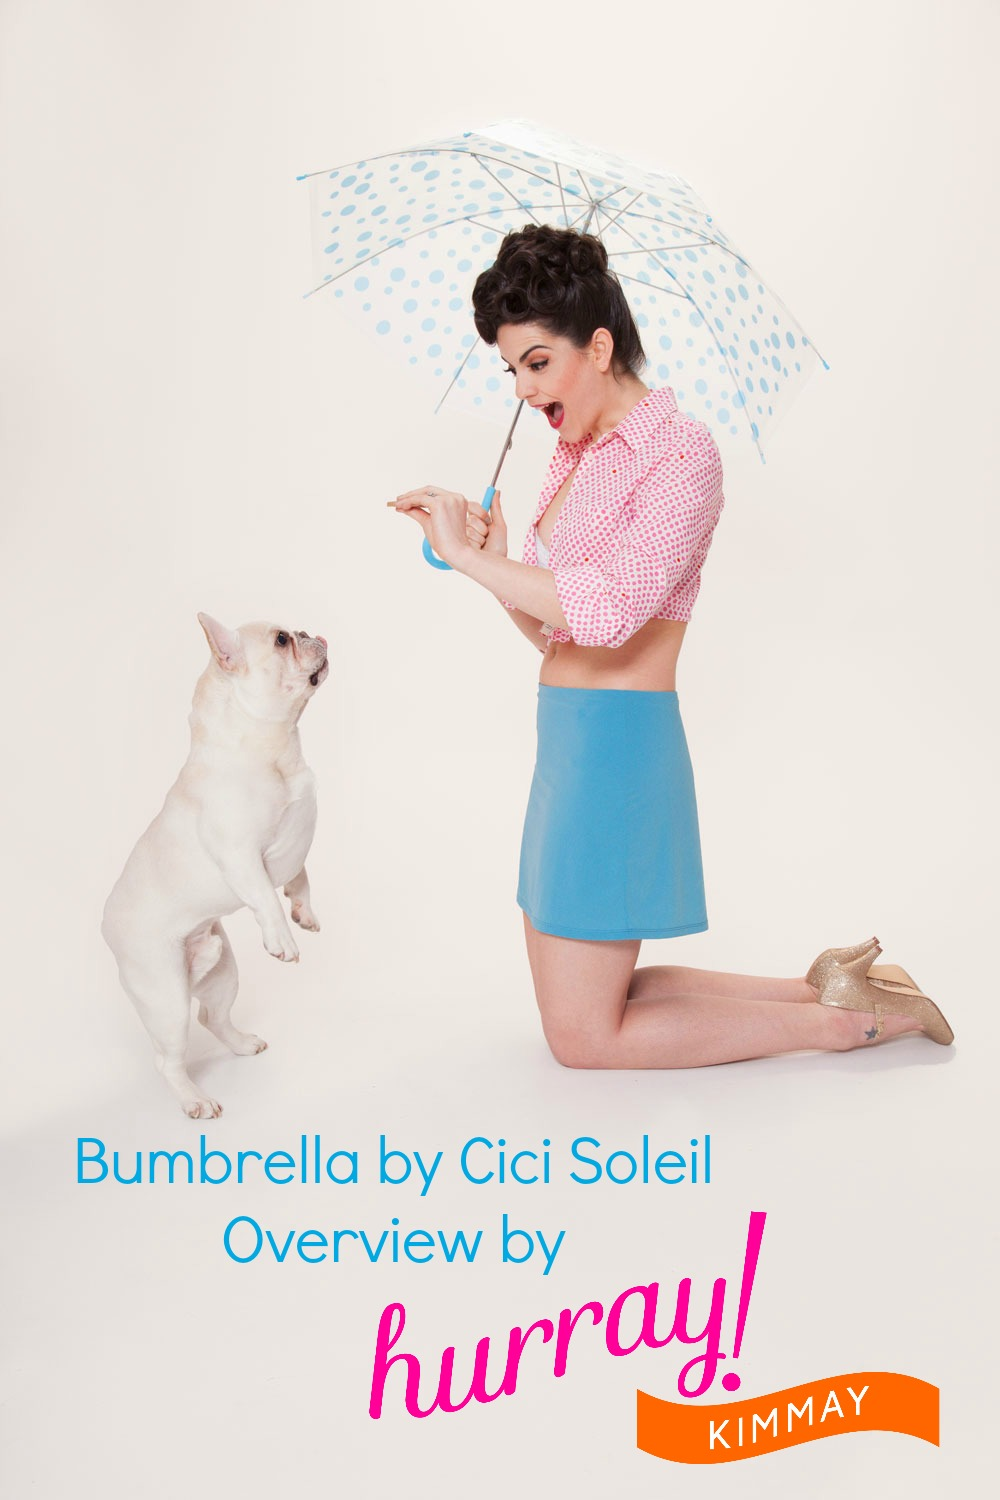 {Video} Overview: The Bumbrella by Cici Soleil